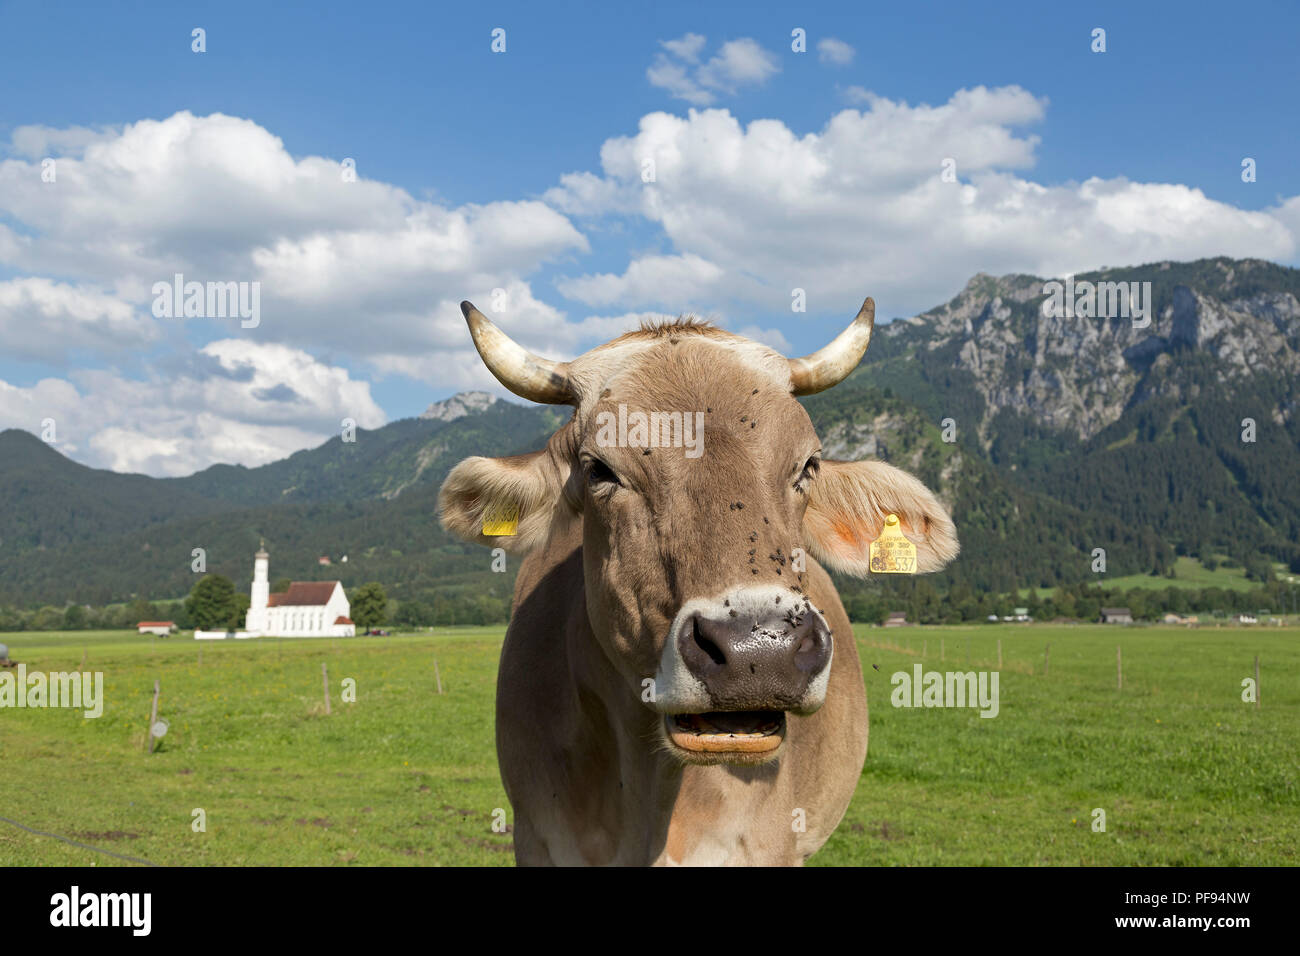 cow in front of St. Coloman Church near Schwangau, Allgaeu, Bavaria, Germany - Stock Image